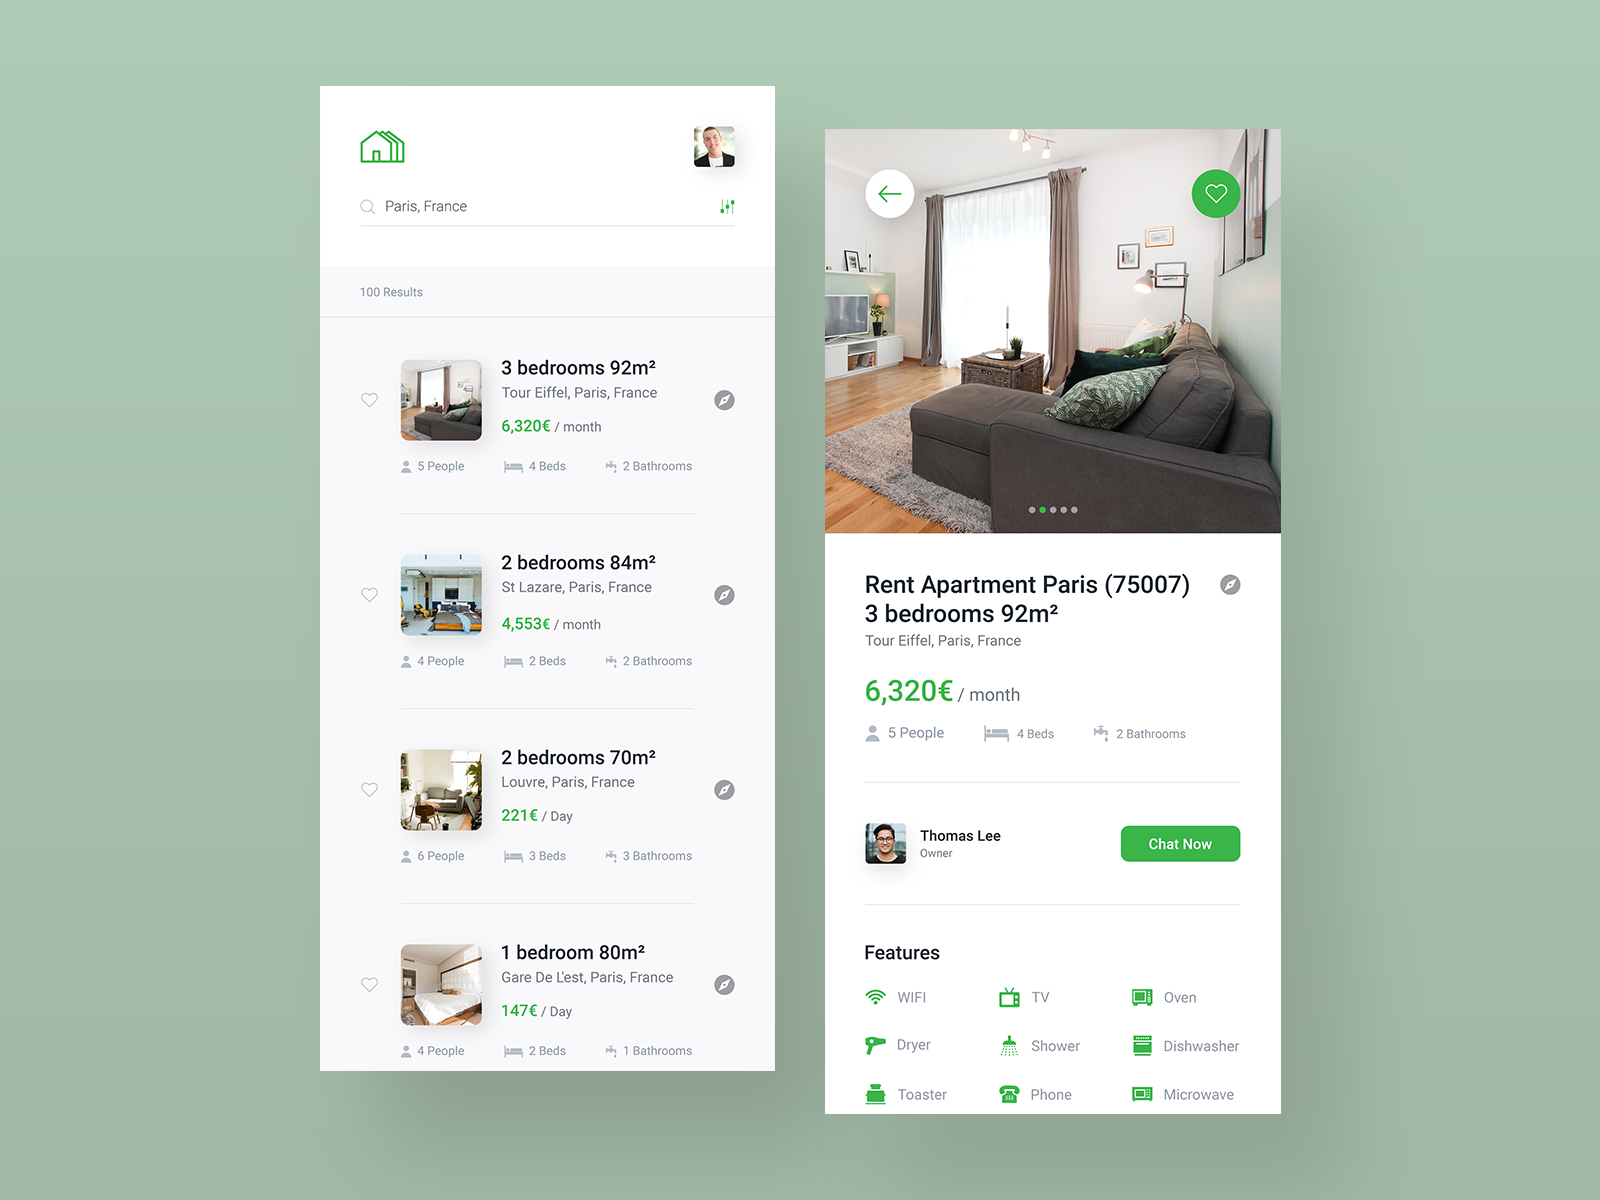 Application interface design examples: property rental app